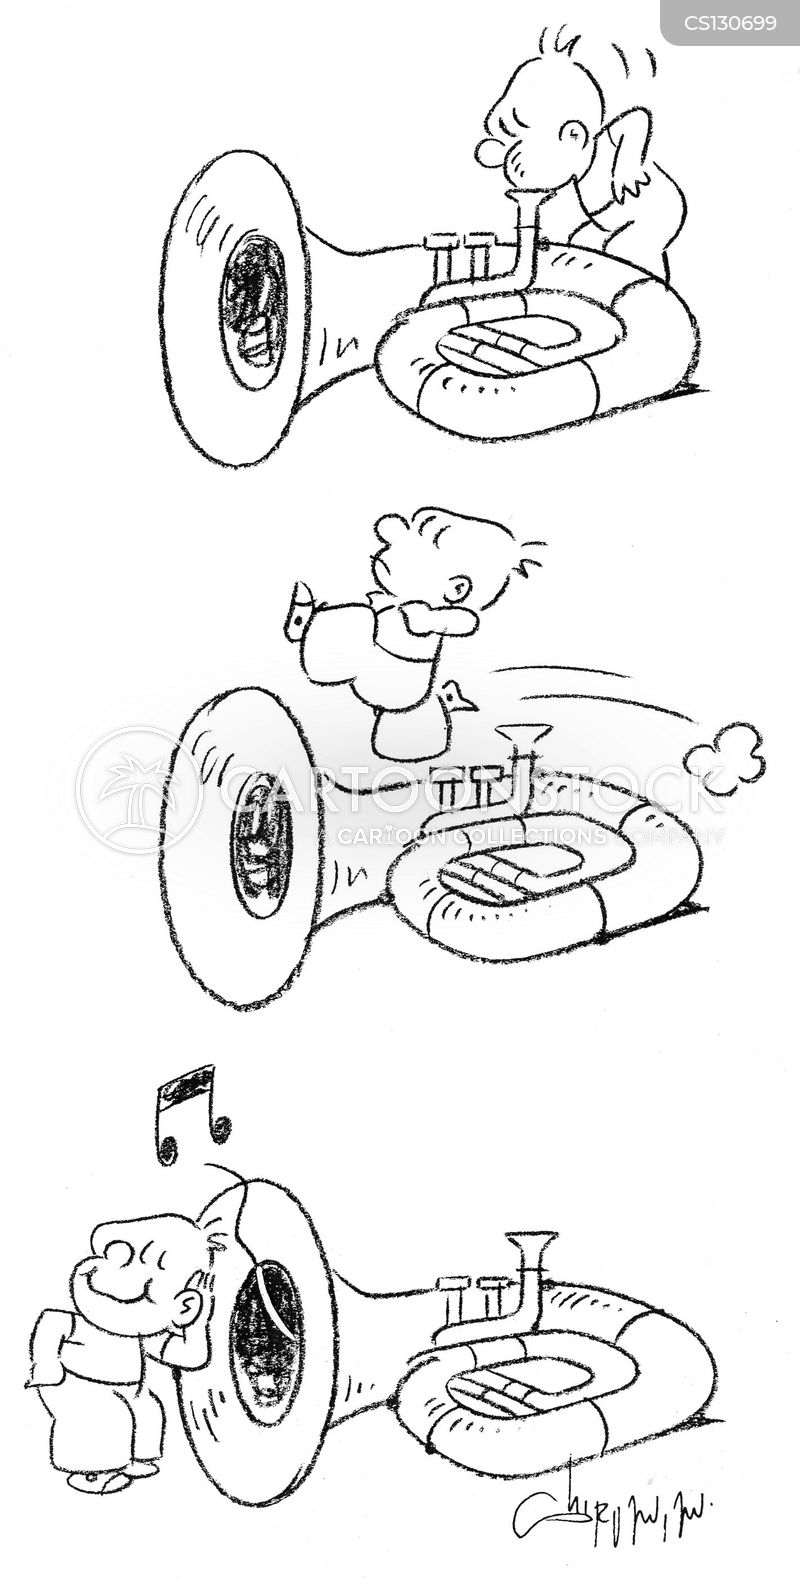 Brass Wind Instruments Cartoons and Comics - funny ...